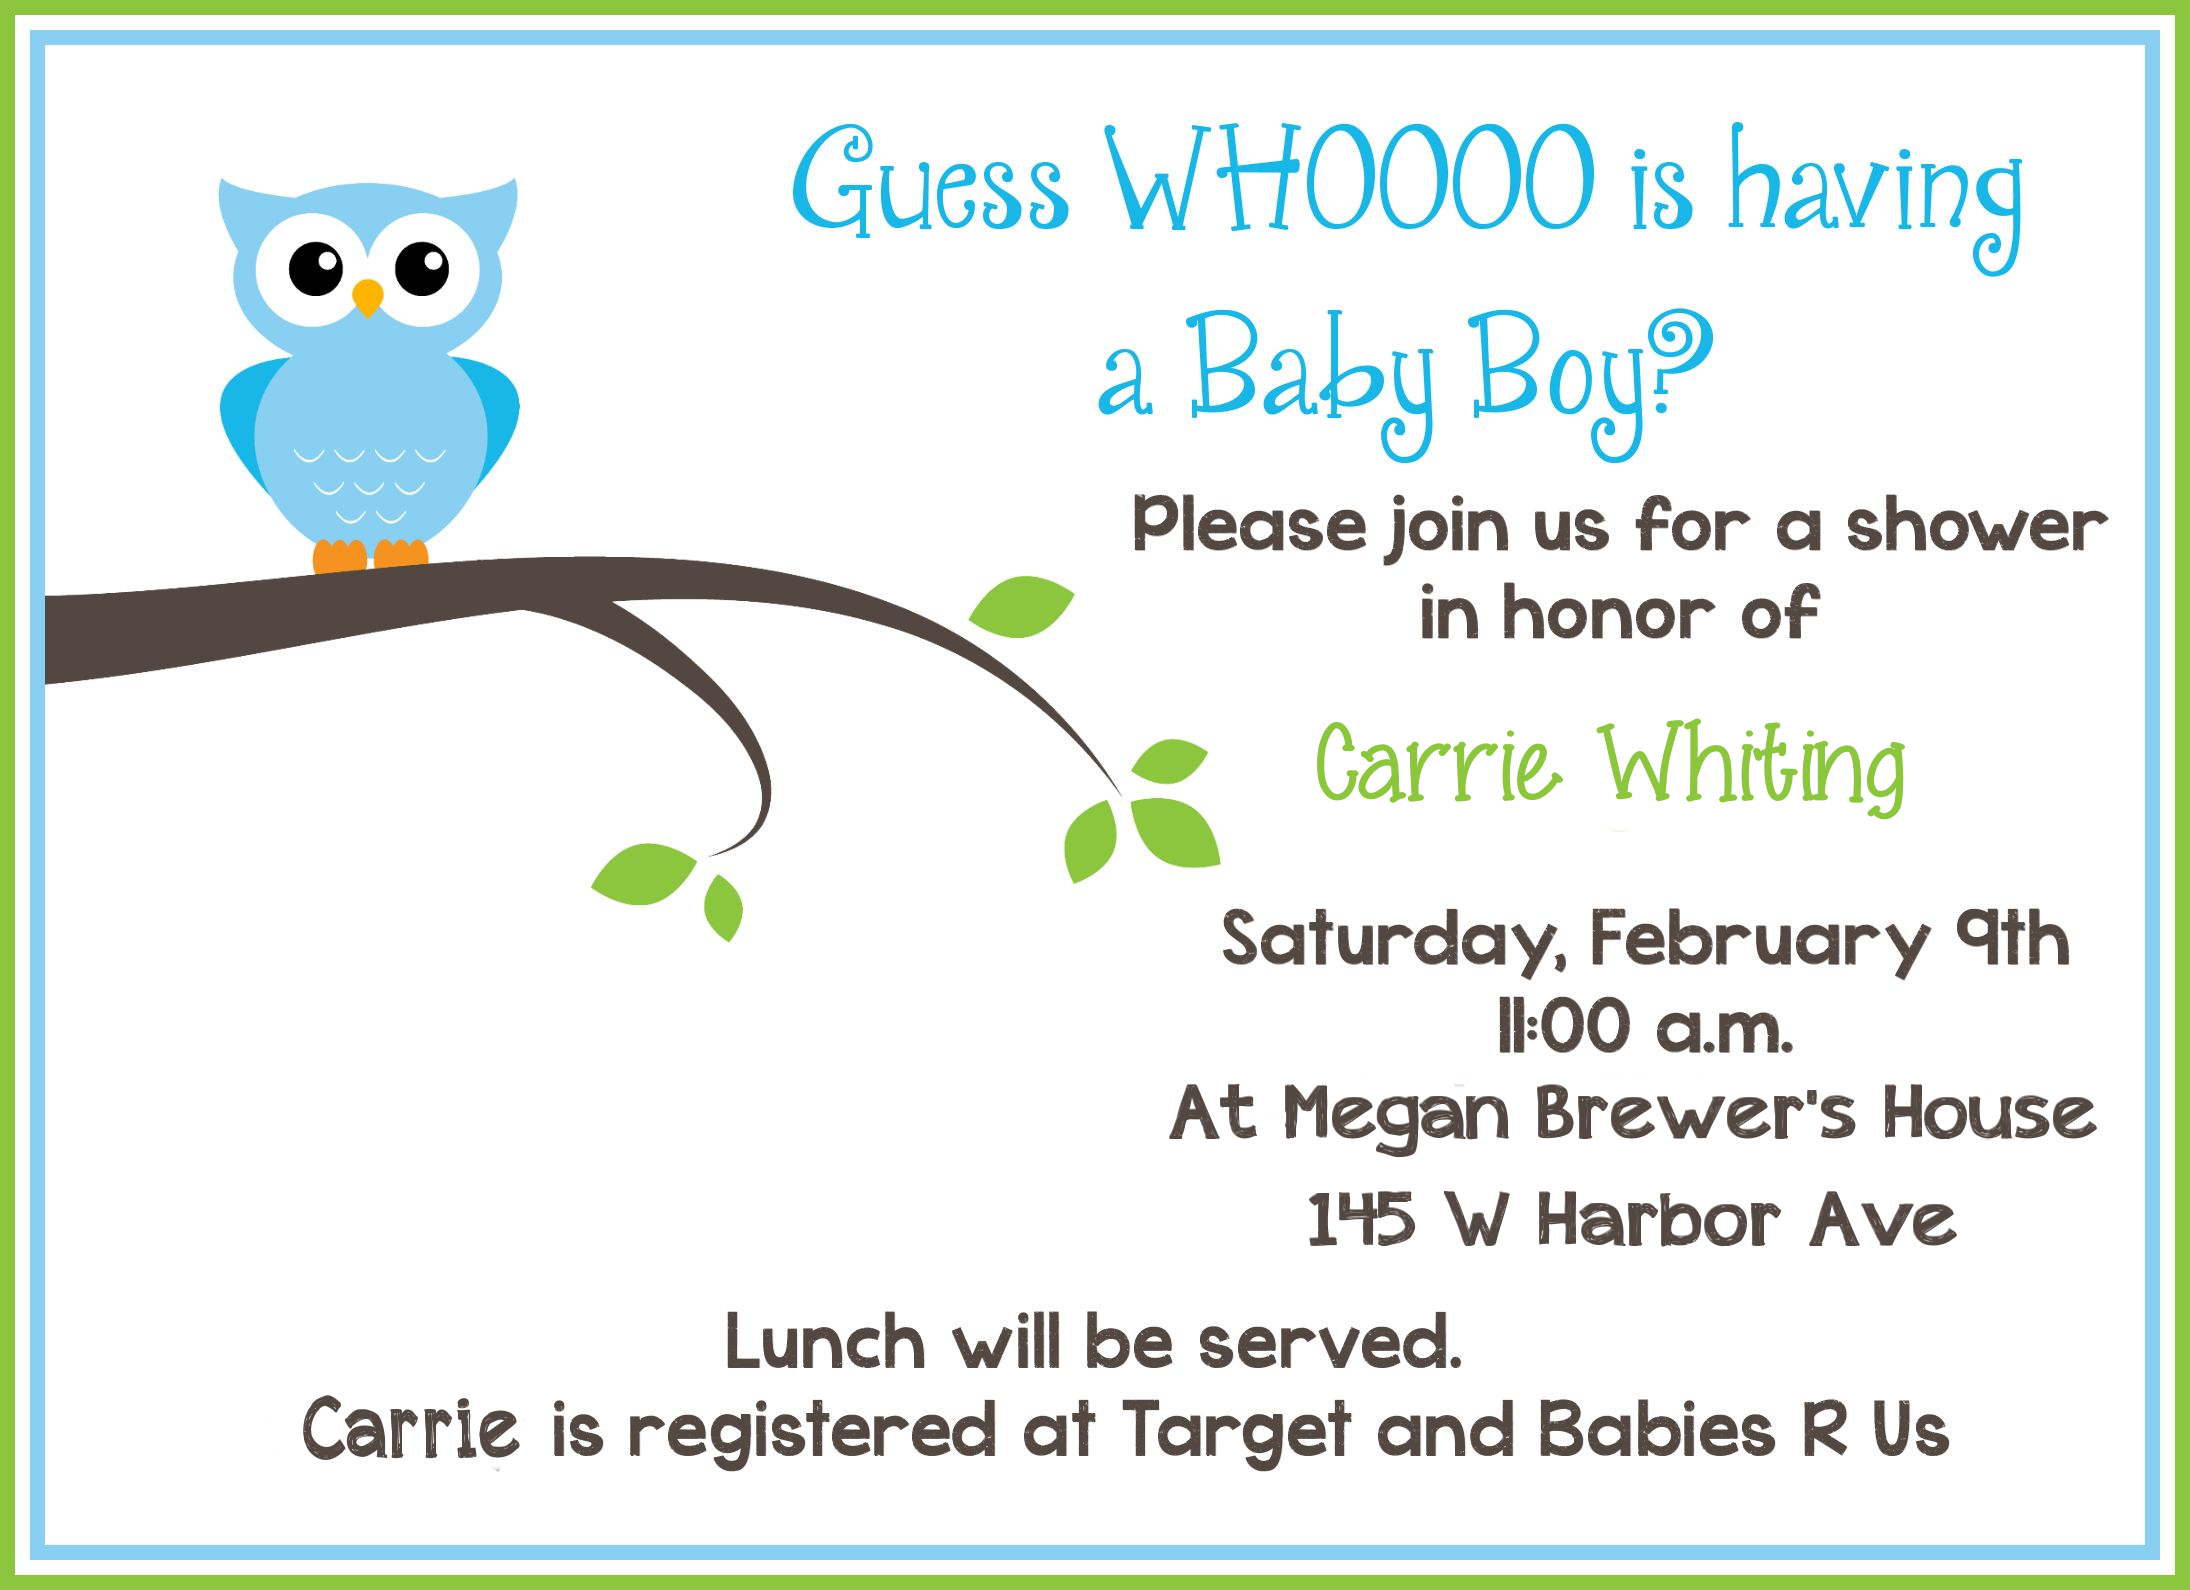 Full Size of Baby Shower:delightful Baby Shower Invitation Wording Picture Designs Baby Shower Invitation Wording Free Printable Owl Baby Shower Invitations Other Printables Free Printable Owl Baby Shower Invitations Sample